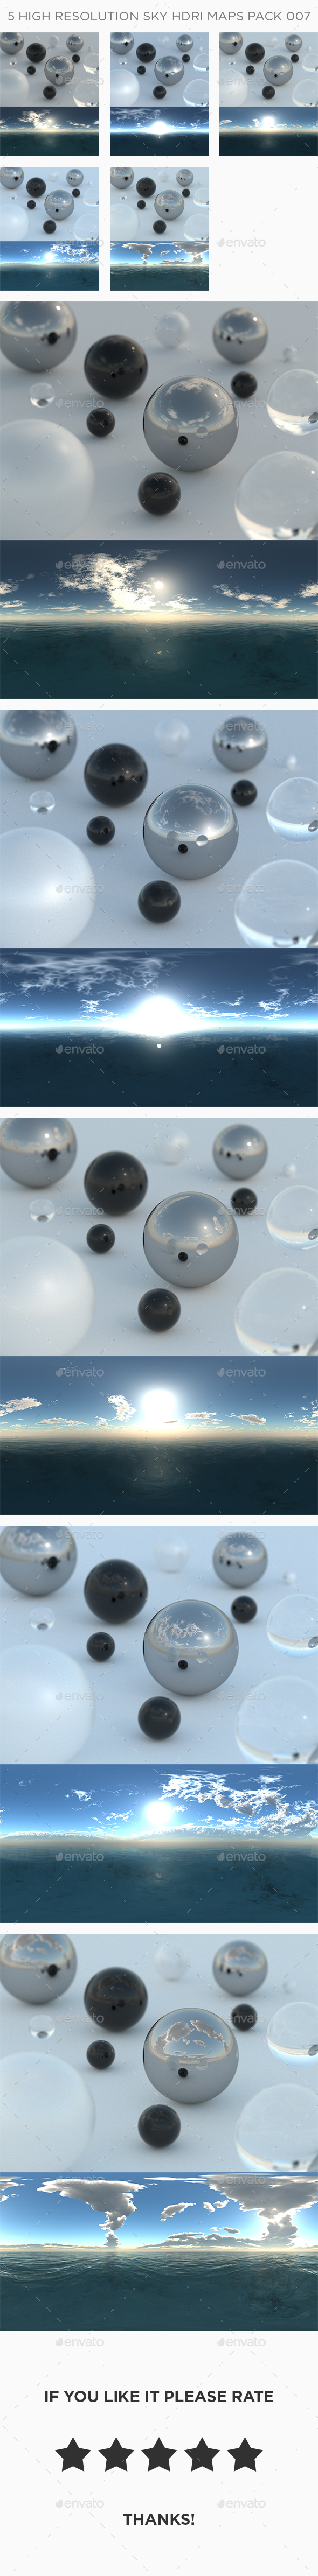 5 High Resolution Sky HDRi Maps Pack 007 - 3DOcean Item for Sale